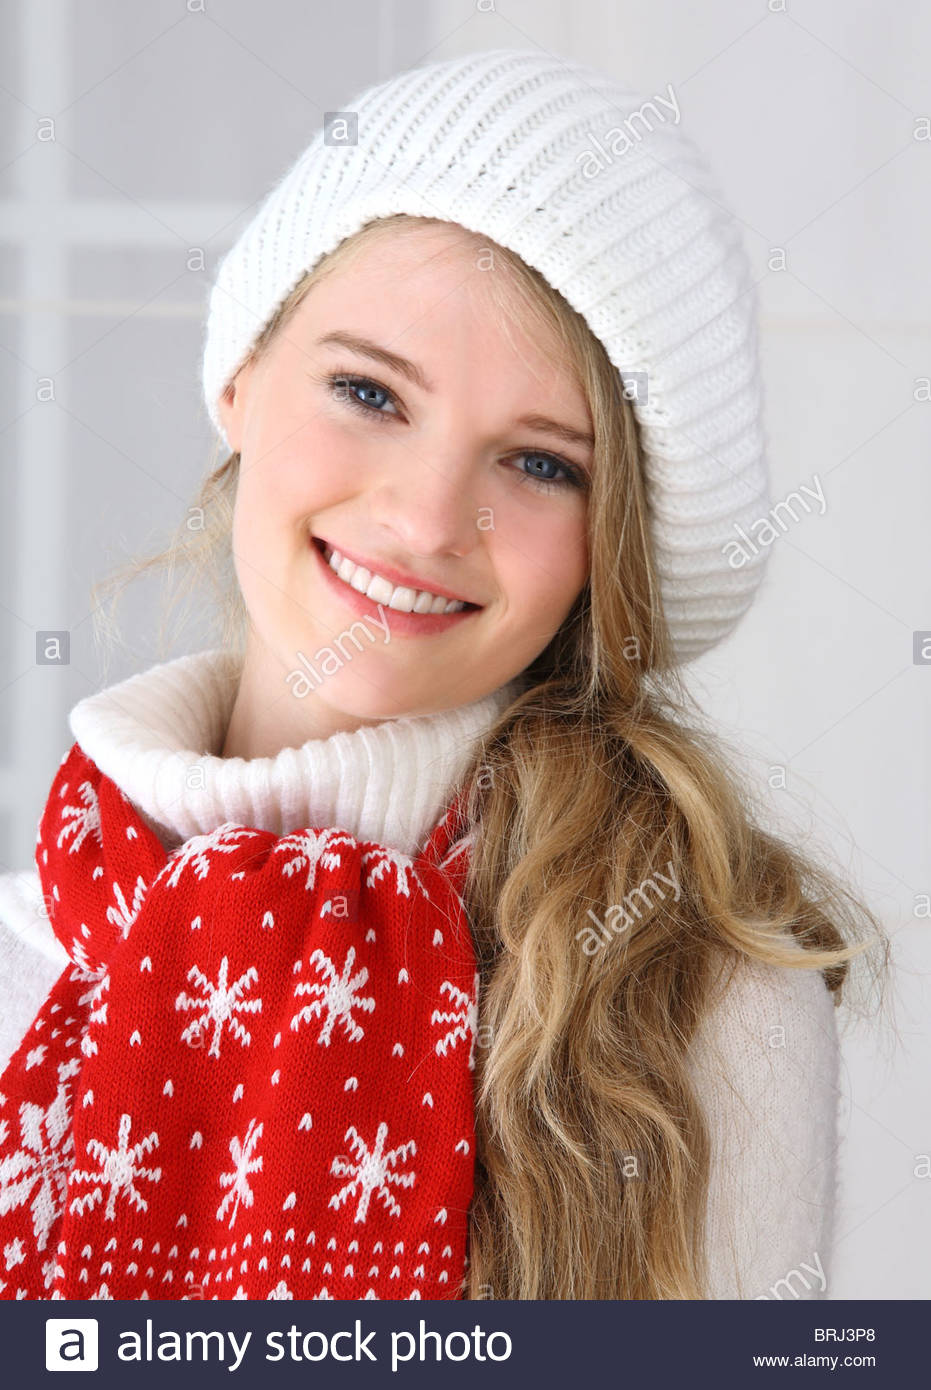 portrait of young woman with red scarf - Stock Image